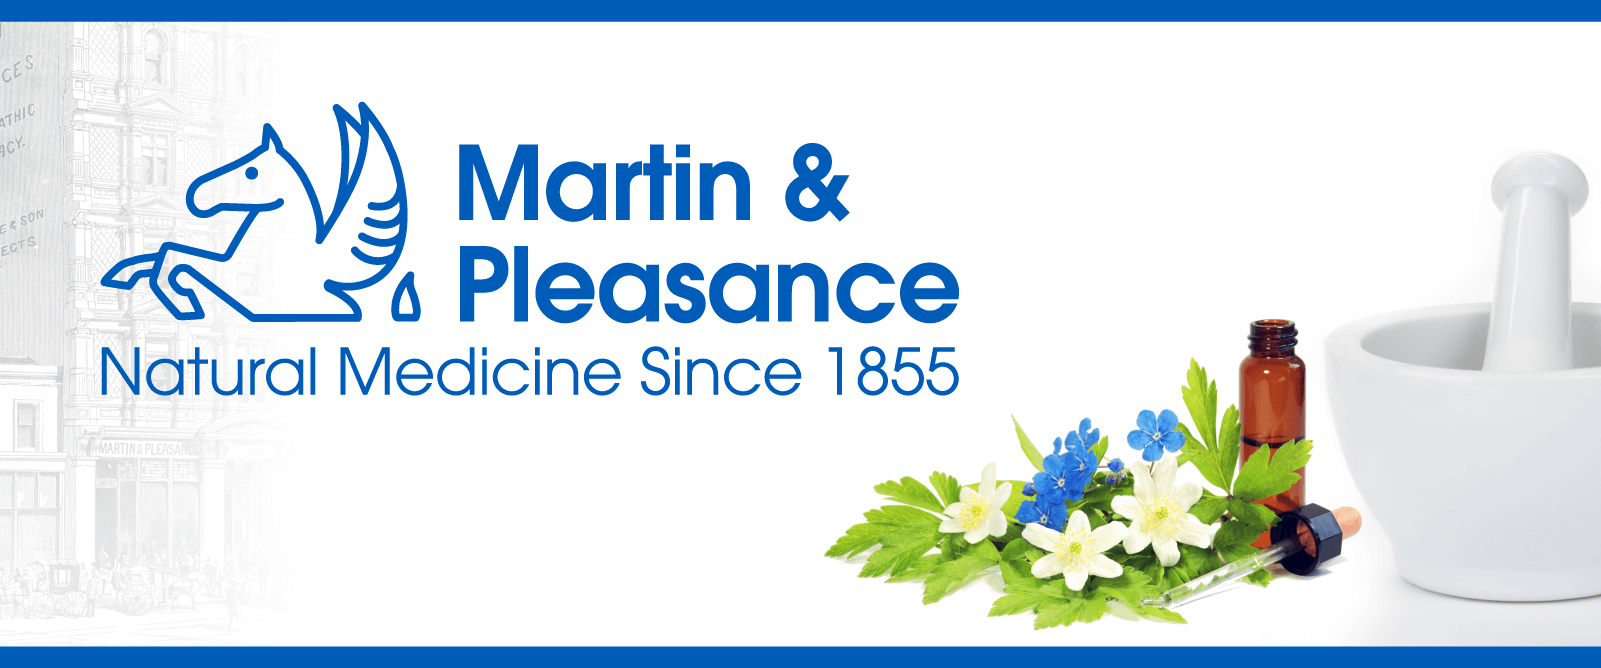 Martin & Pleasance at Well.ca